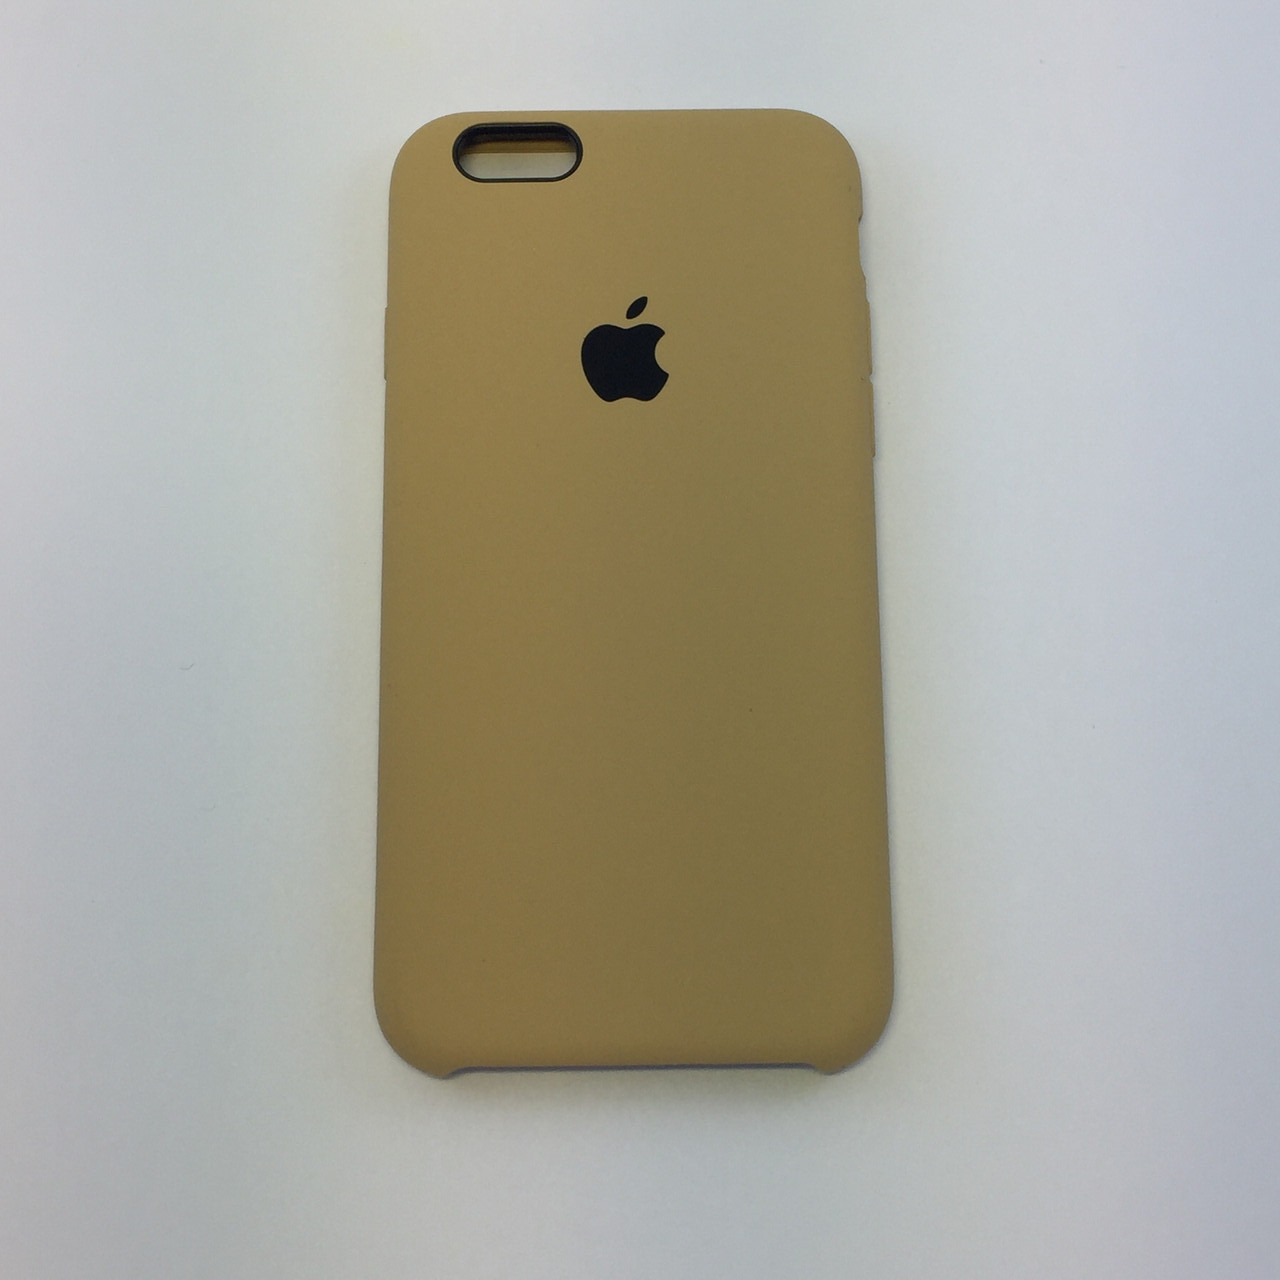 Силиконовый чехол iPhone 7 Plus / 8 Plus, gold, copy original